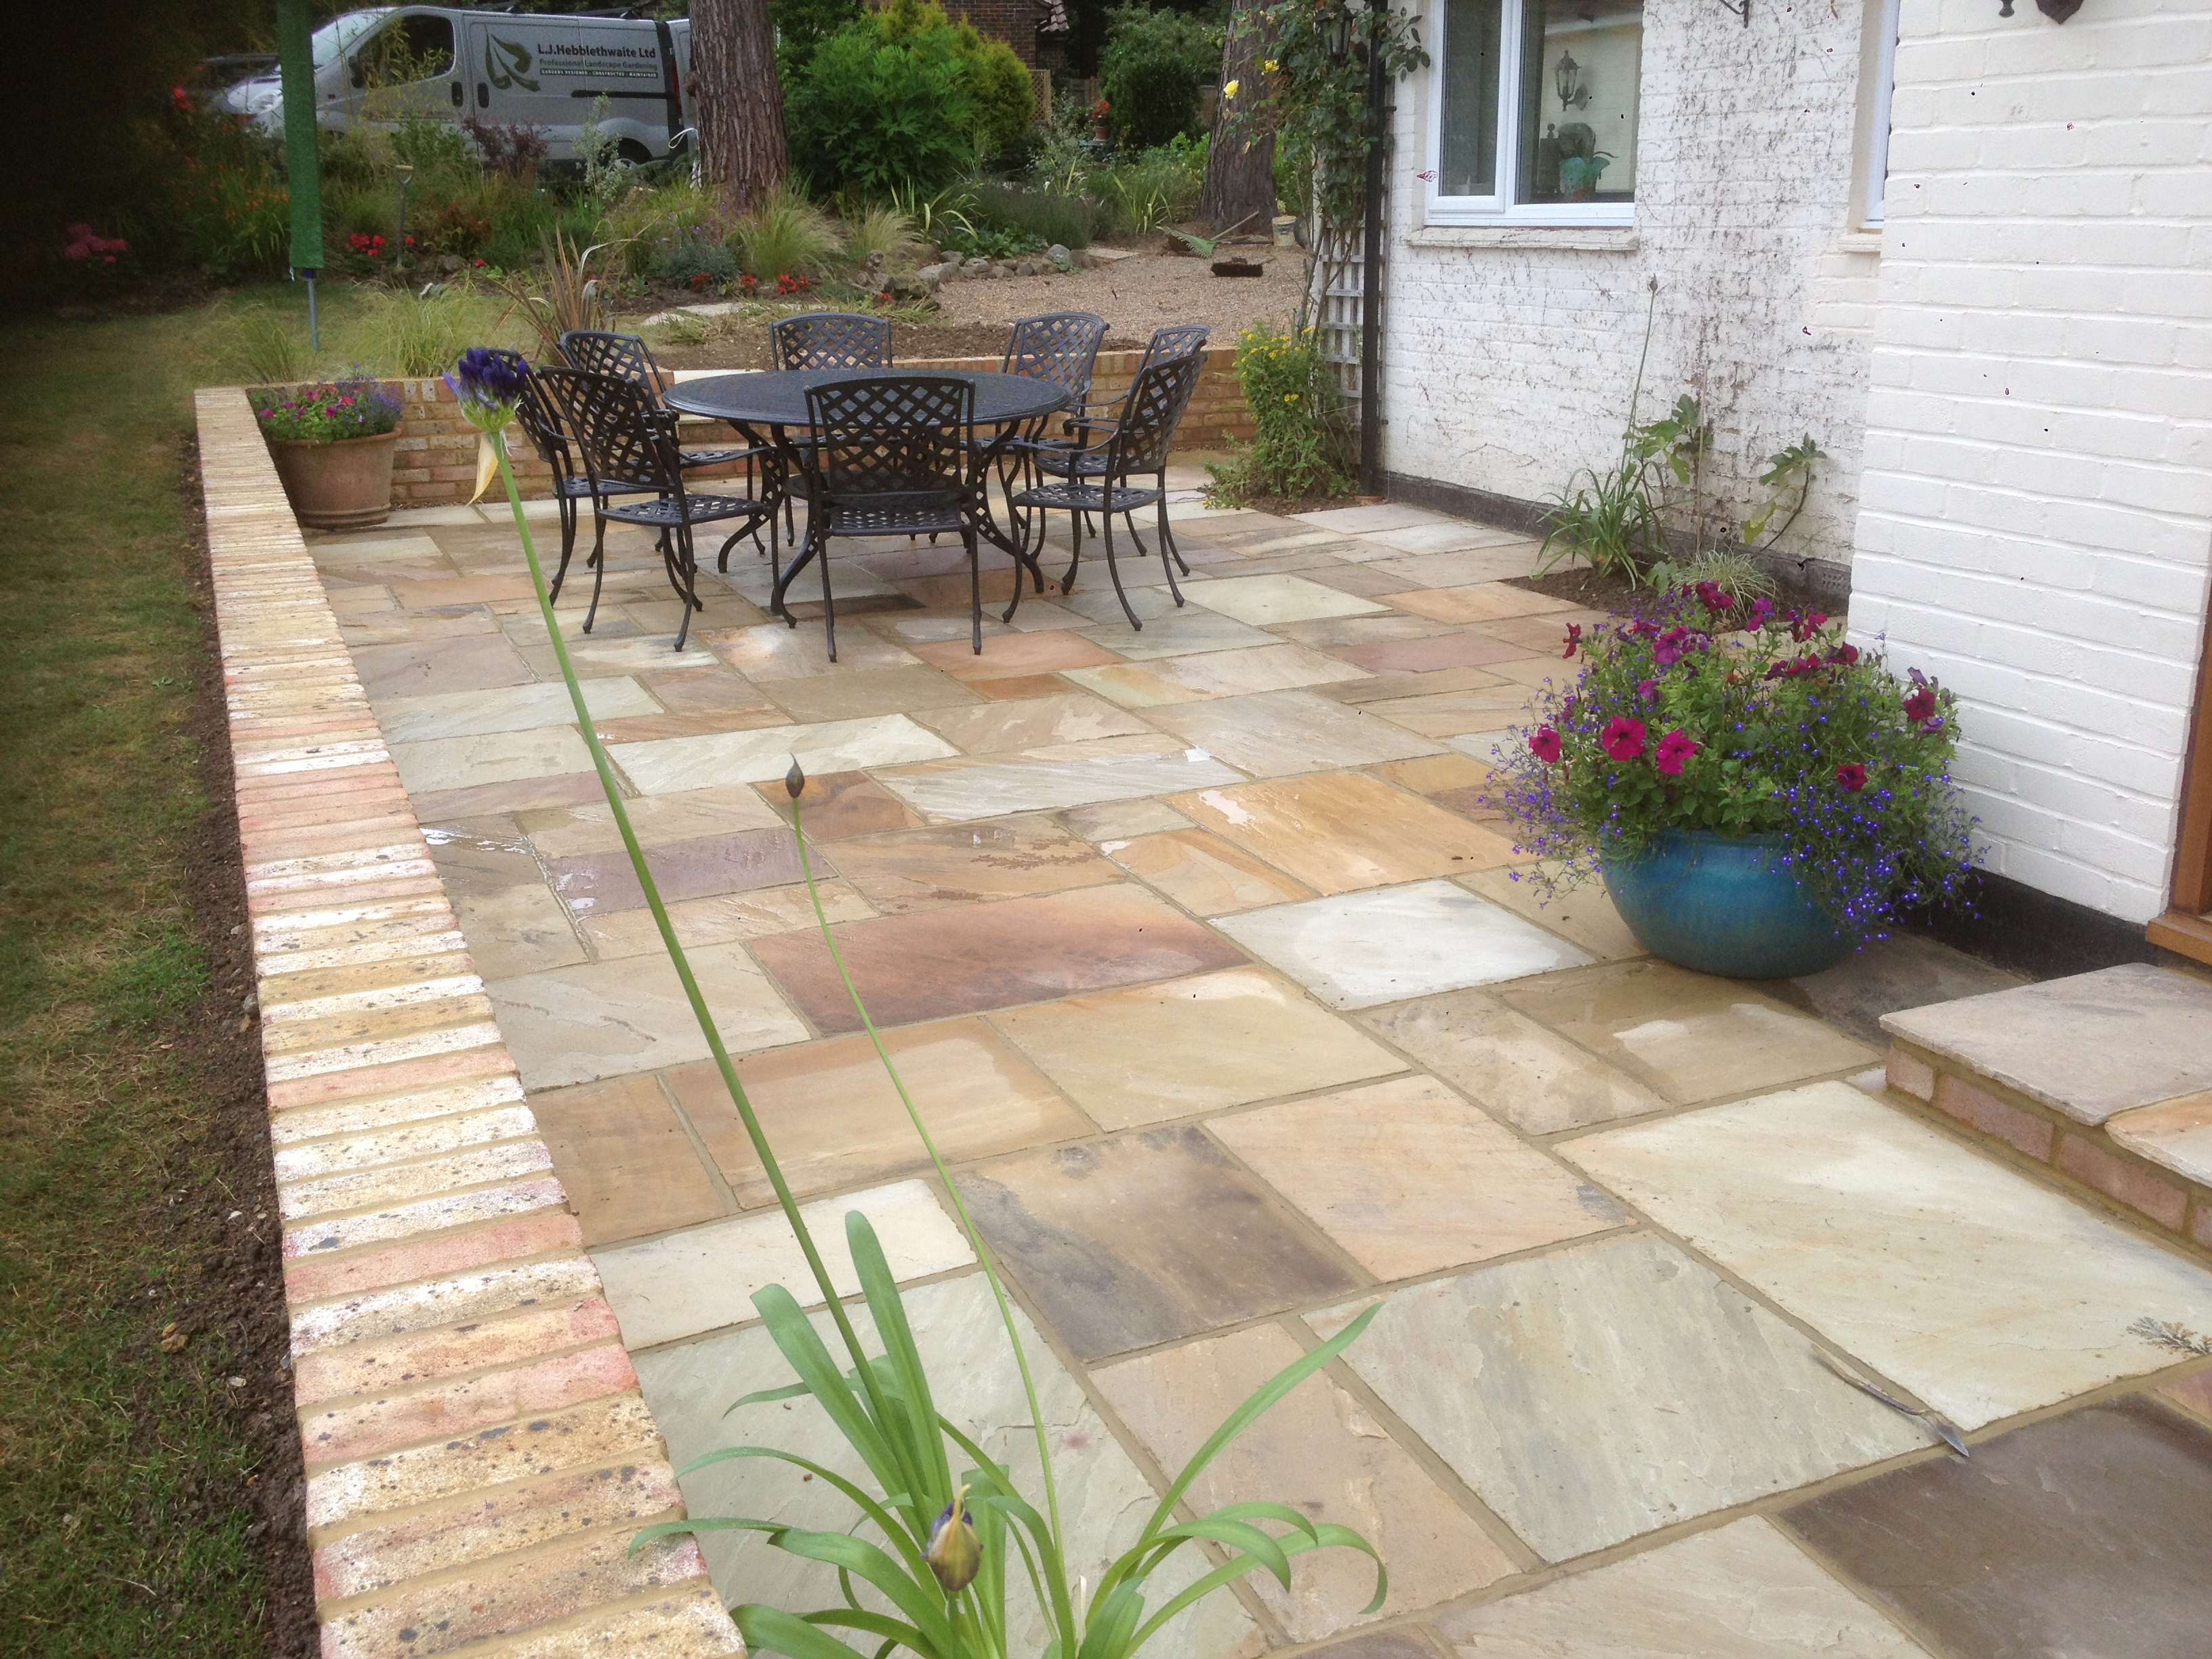 New patio installed by L J Hebblethwaite Ltd in Horsham